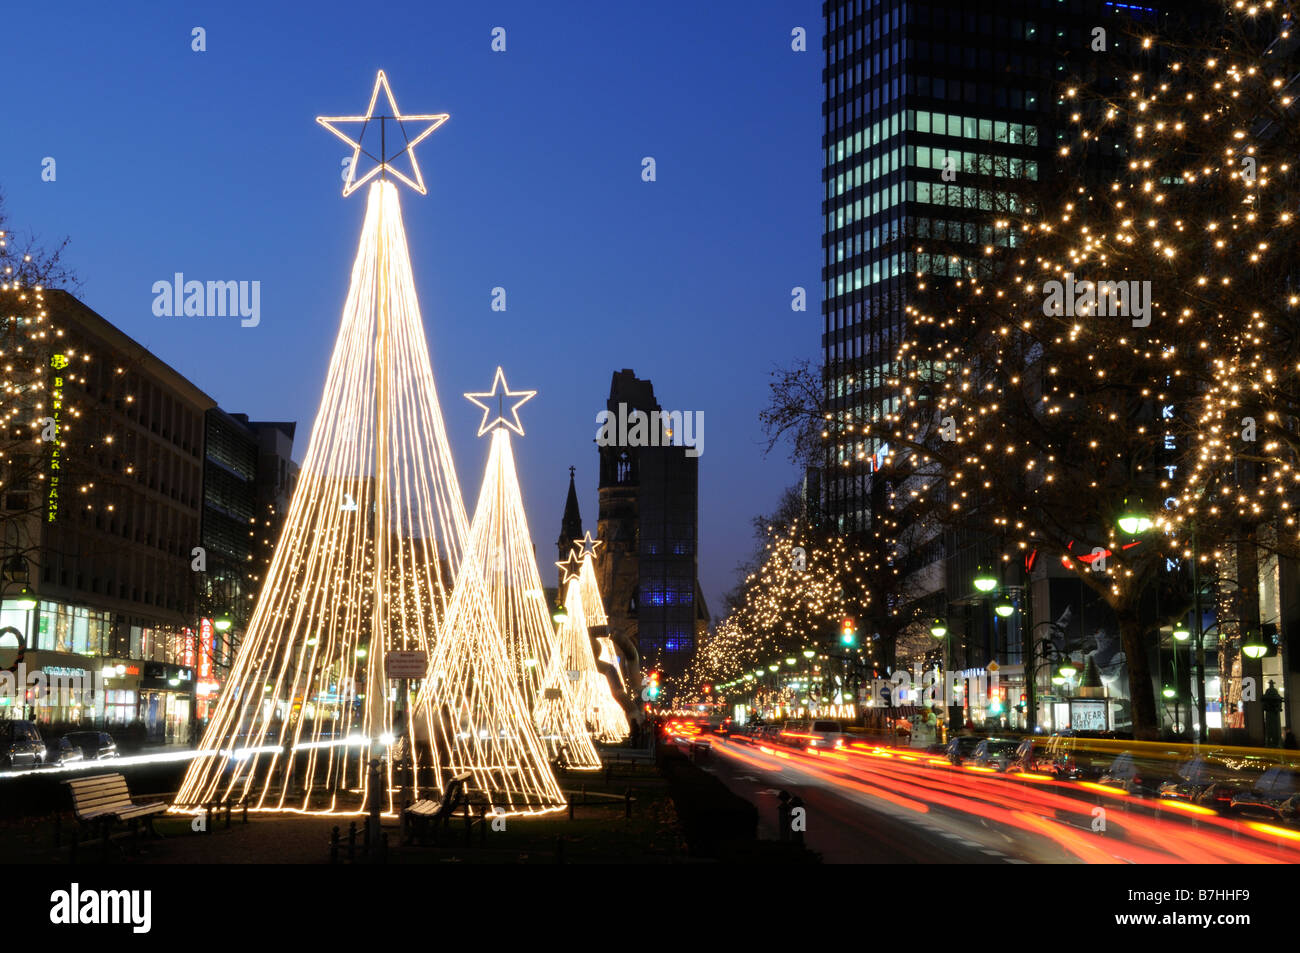 Weihnachtsbeleuchtung Berlin.Christmas Lights In Berlin At Night Stock Photo 21899901 Alamy